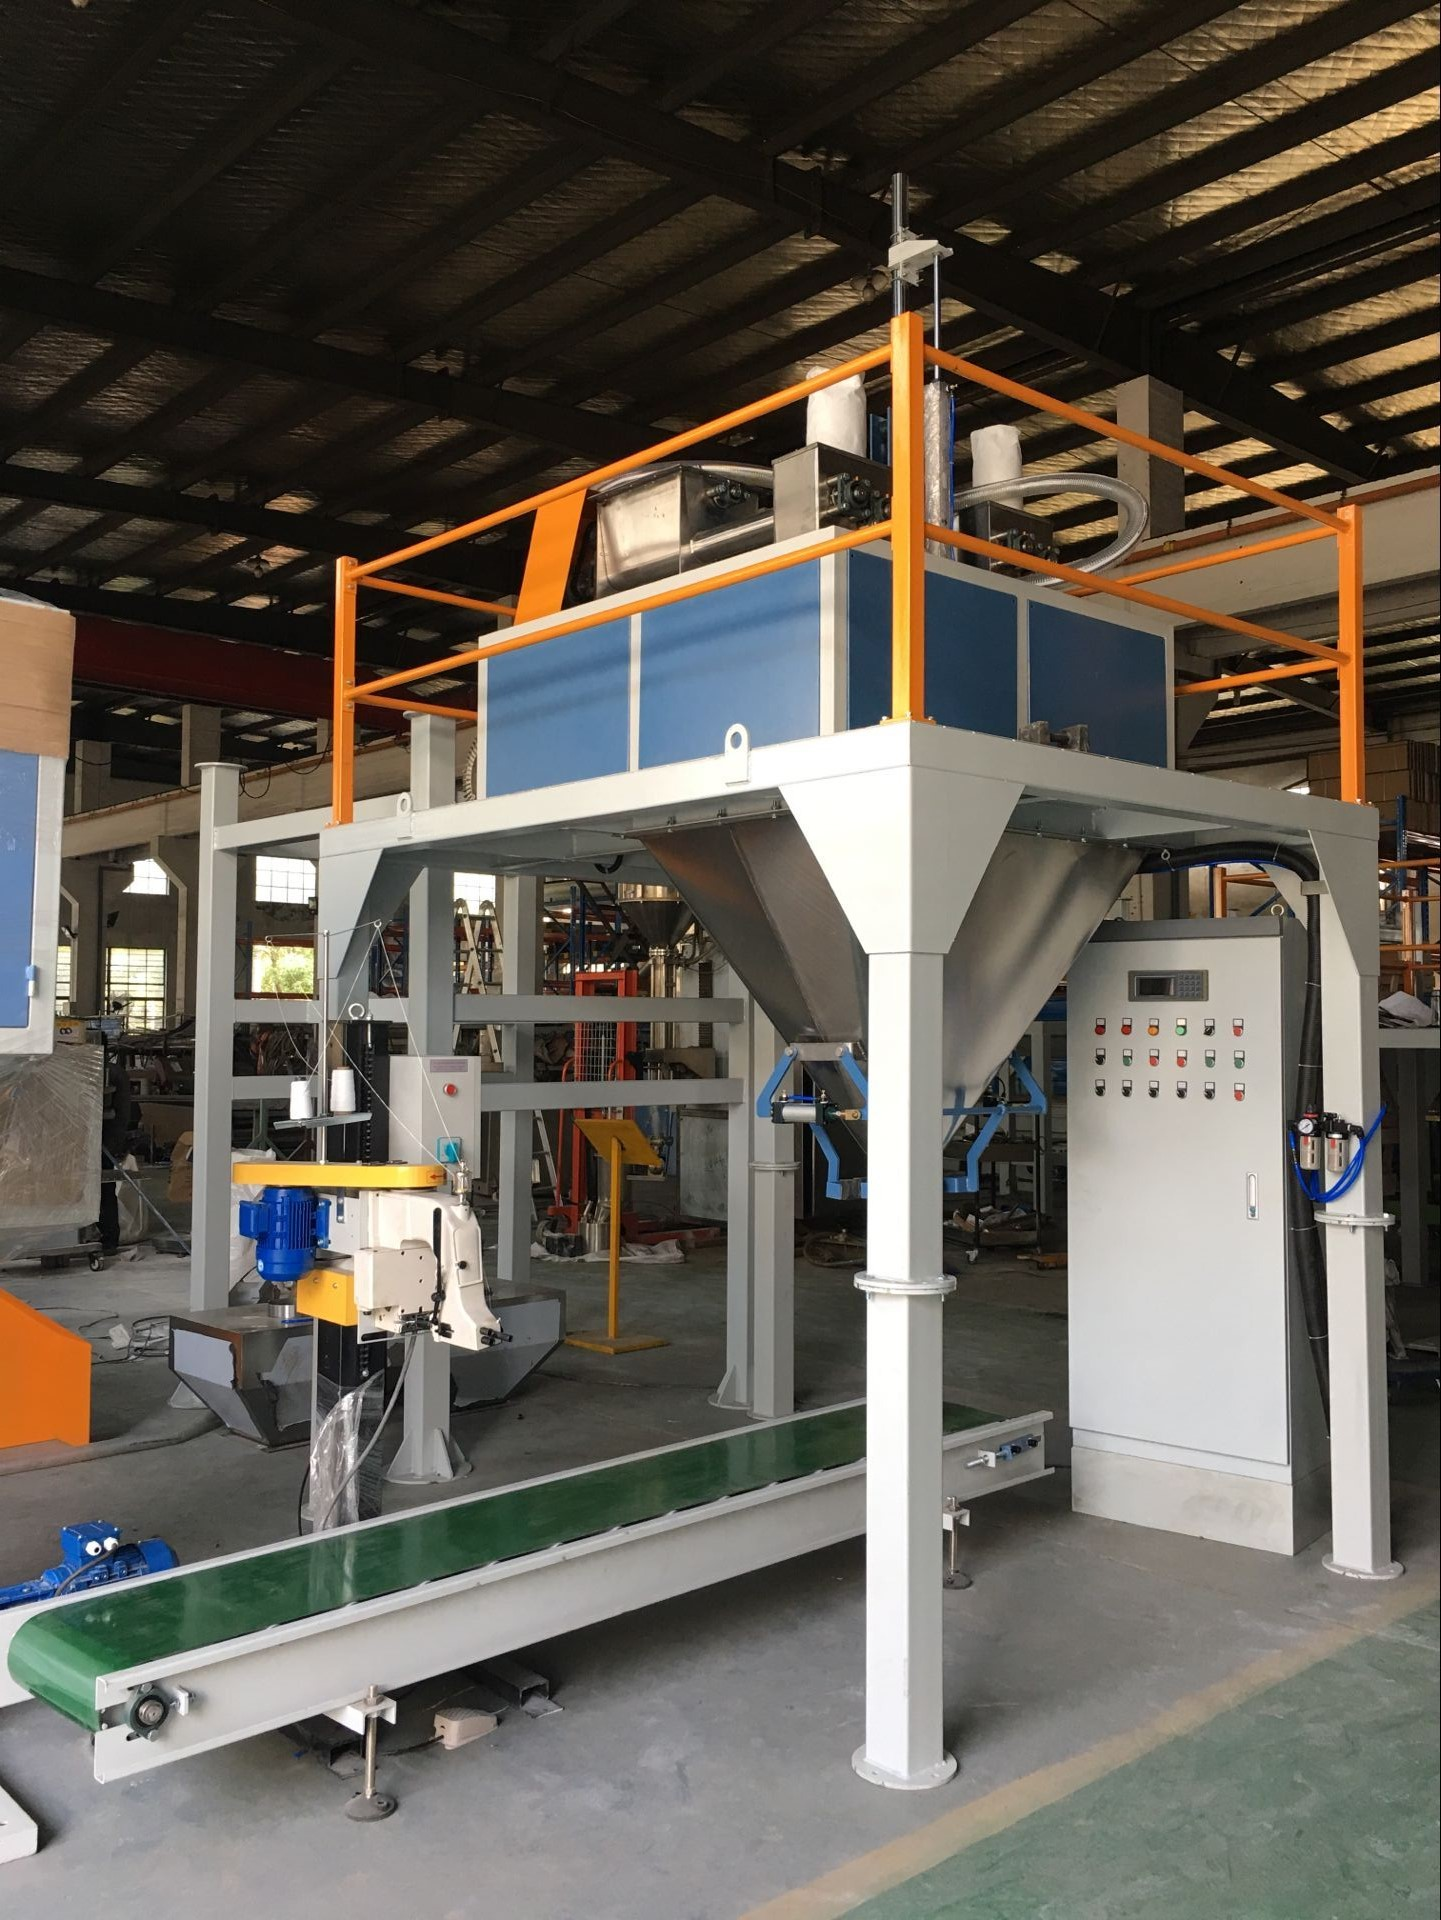 Gypsum Powder Bagging machine fully automated packing line for Bagging system fully automated packing line Textured Protein Bagging Machine Packing Machine bagging palletizing system